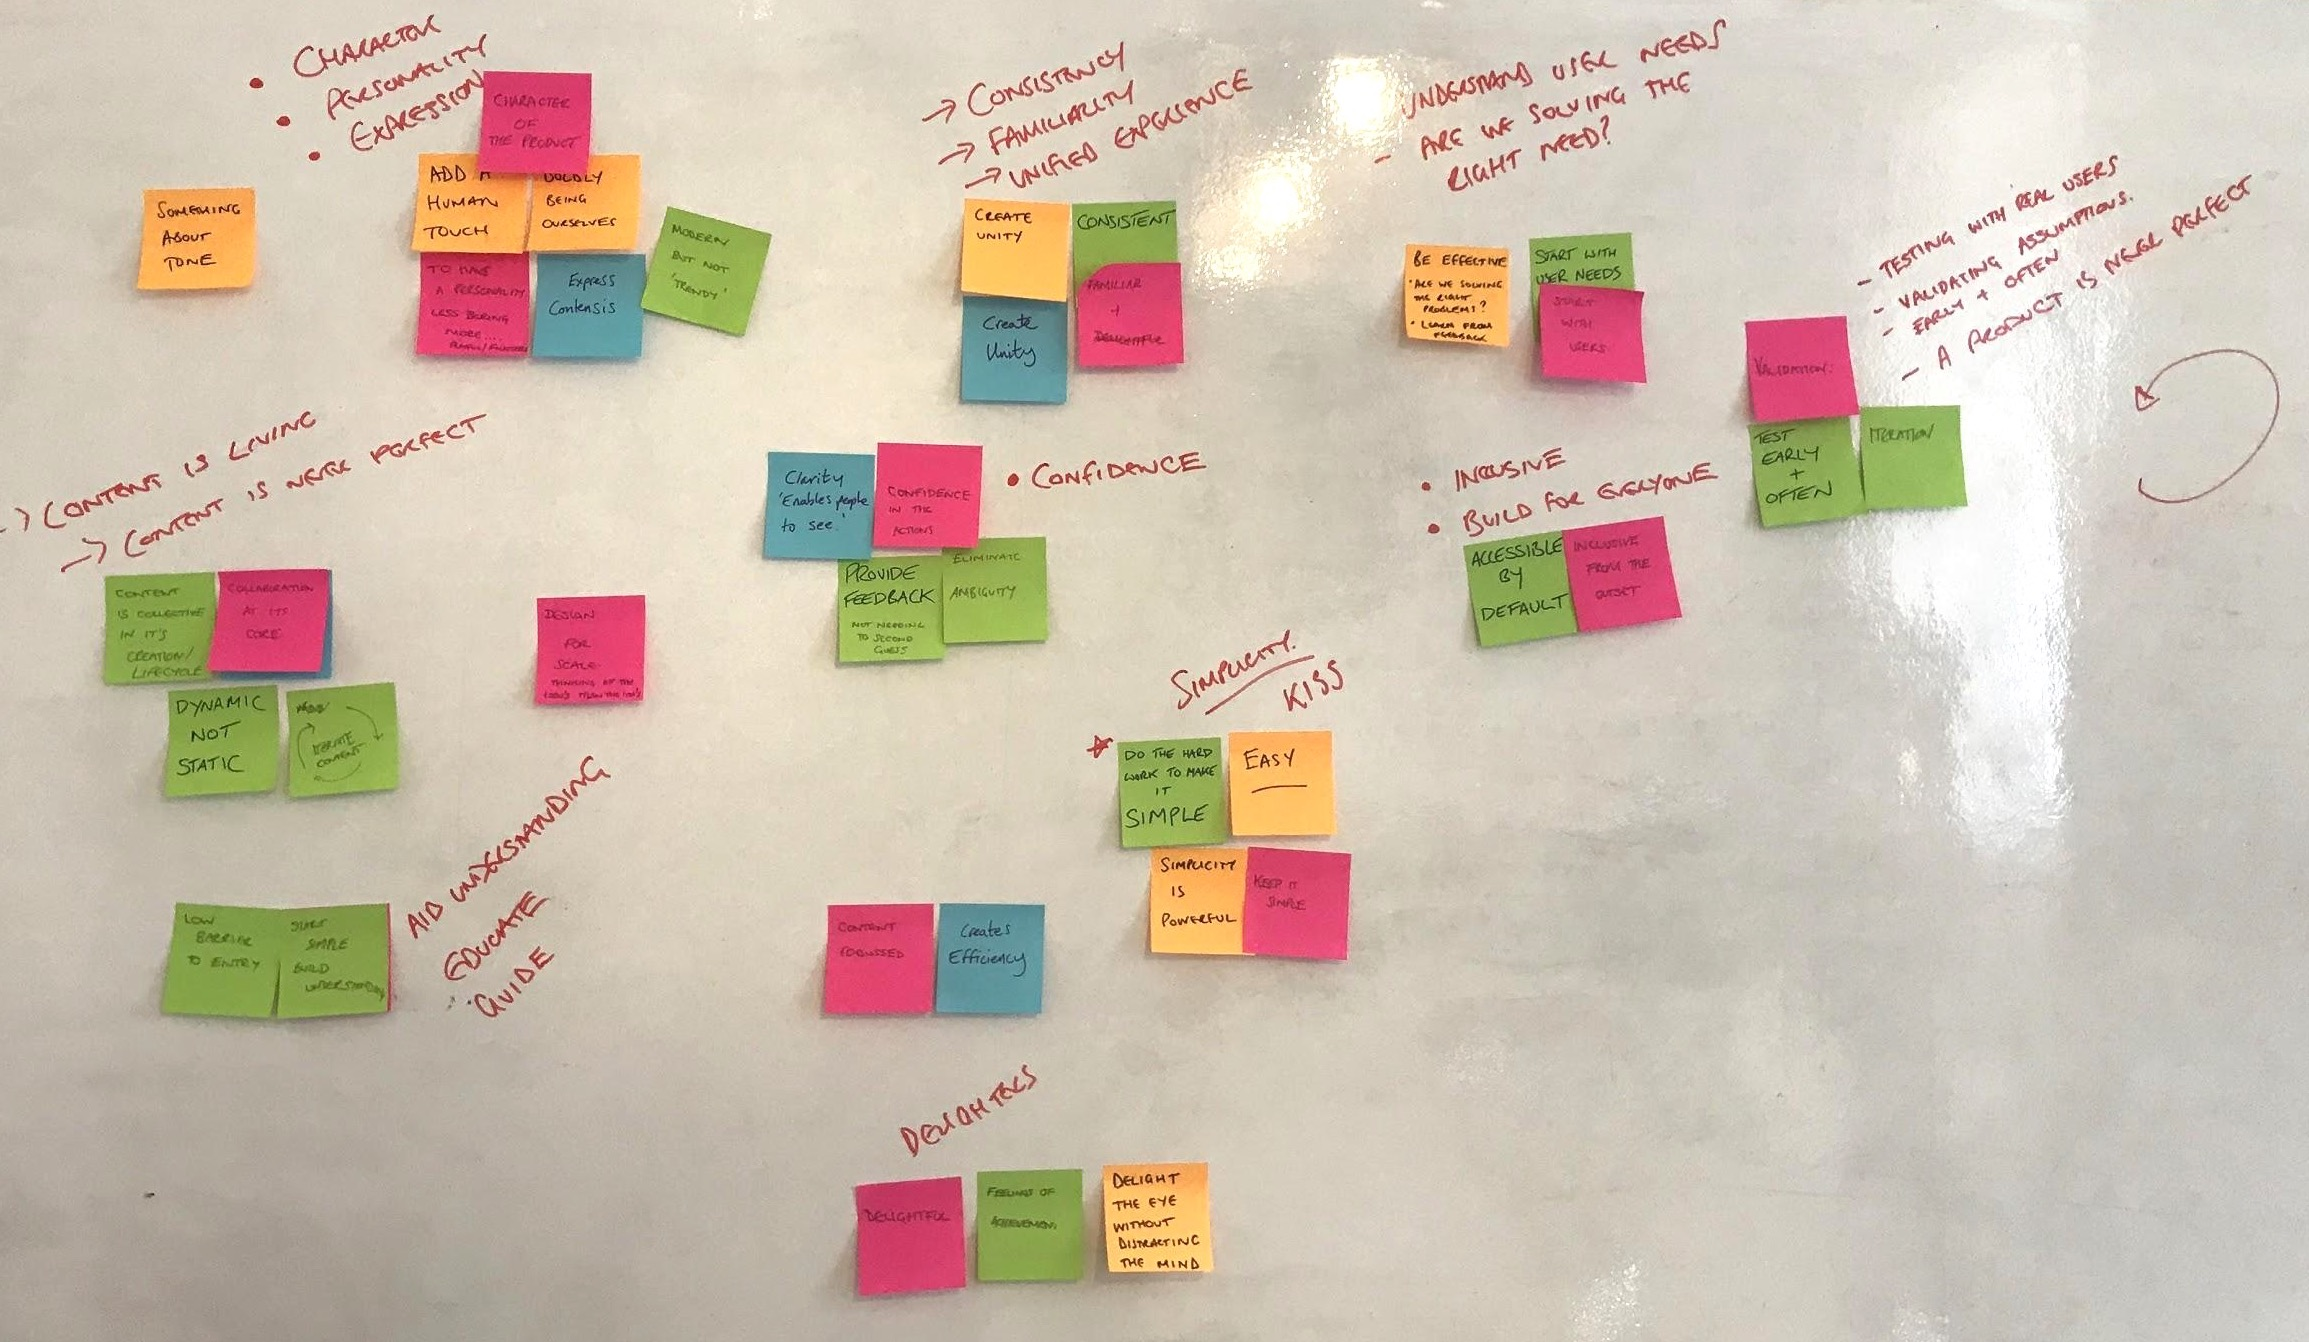 A white board covered in groups of post it notes showing design principle themes